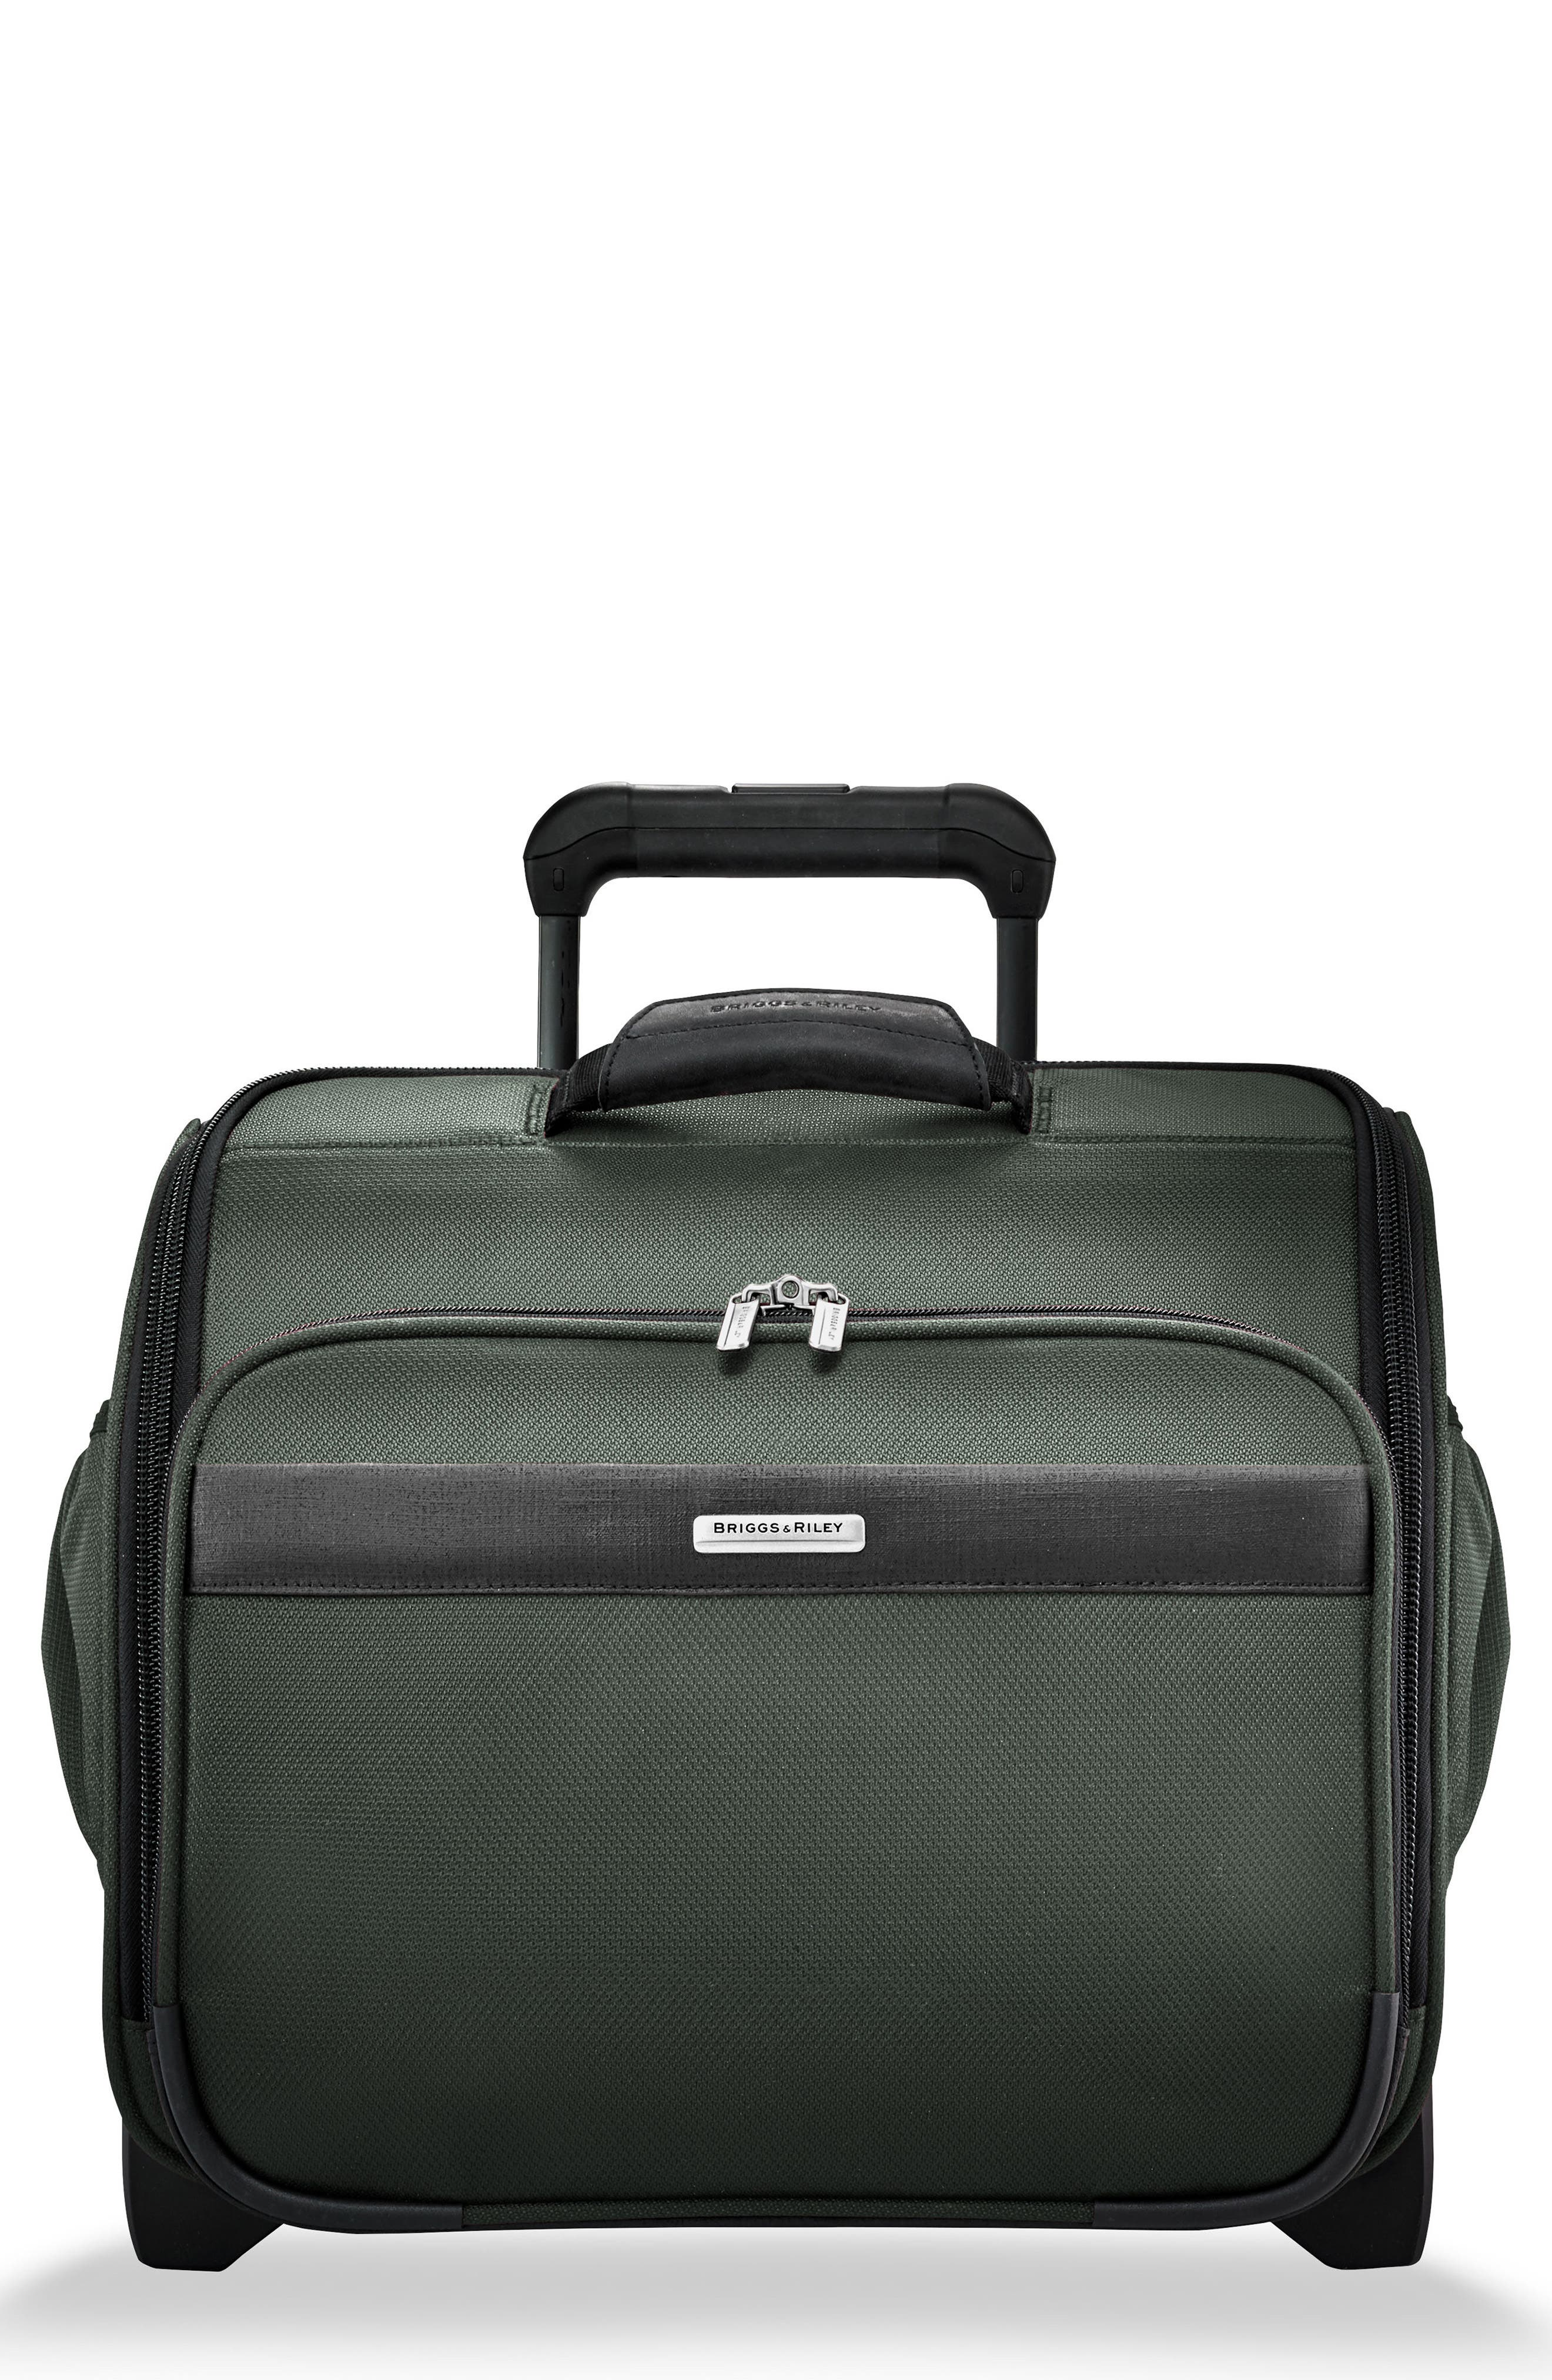 BRIGGS & RILEY Transcend 400 Wheeled Cabin Bag